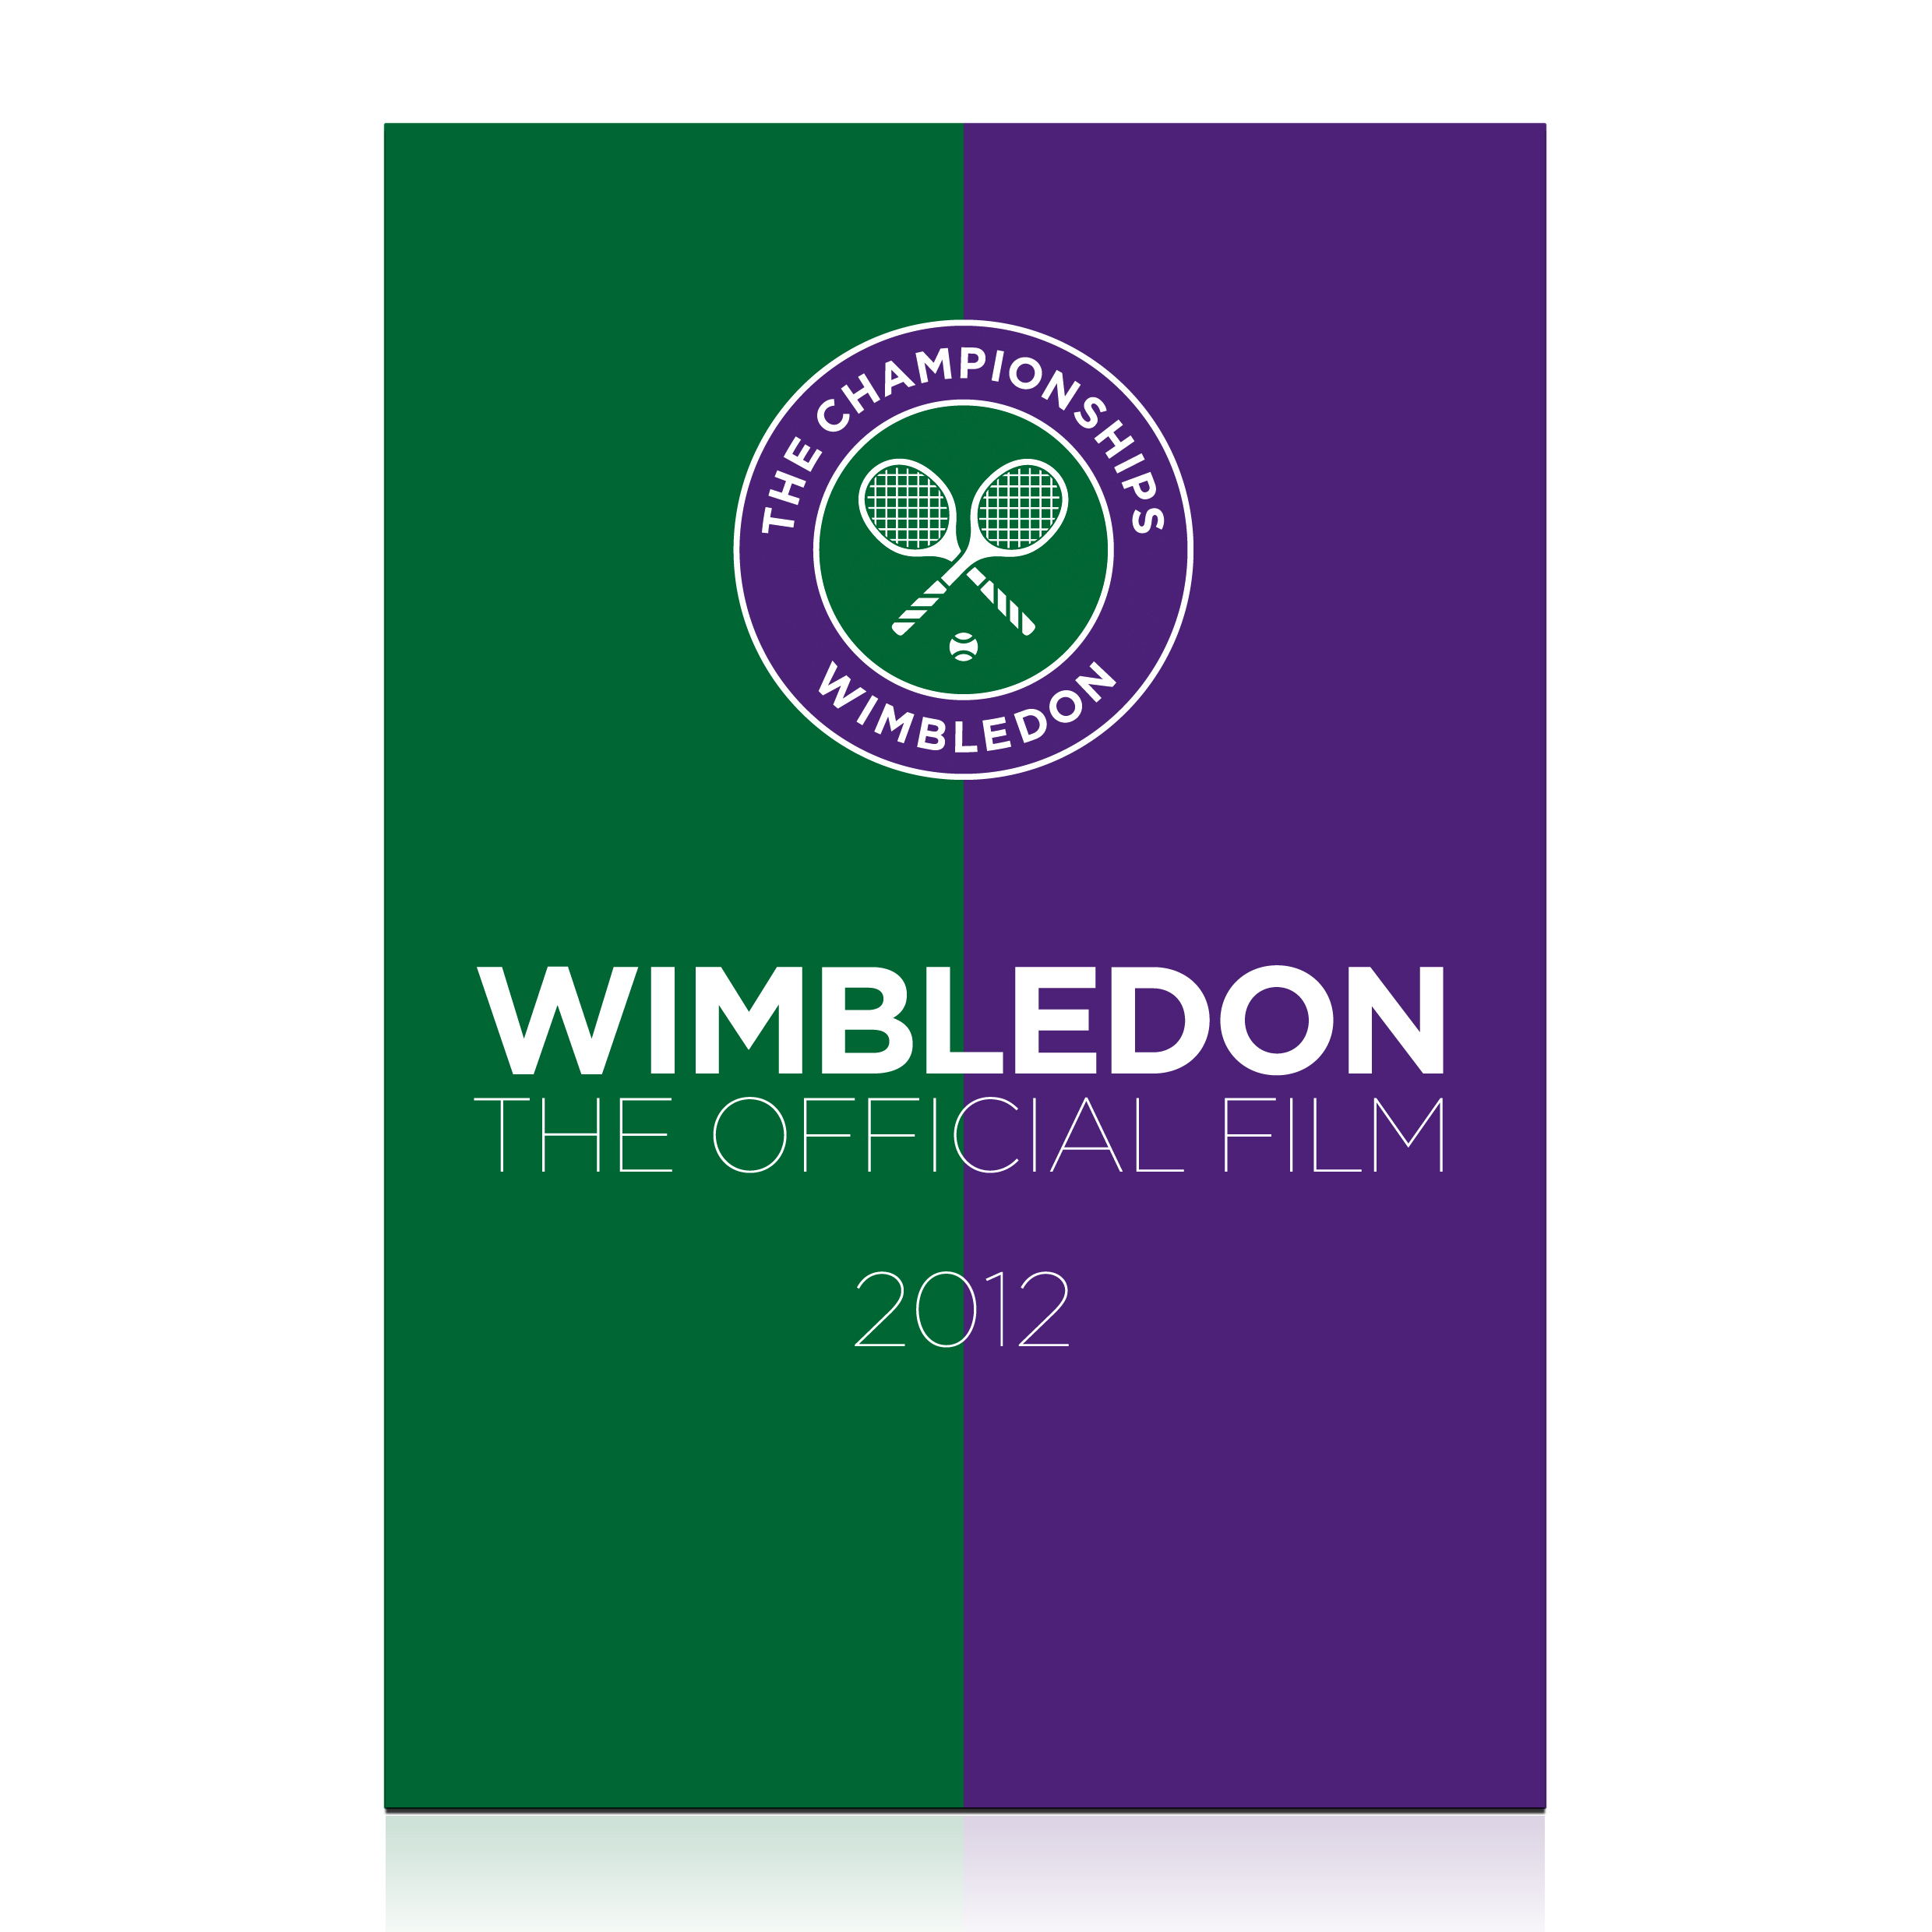 Wimbledon 2012 Official Film - DVD